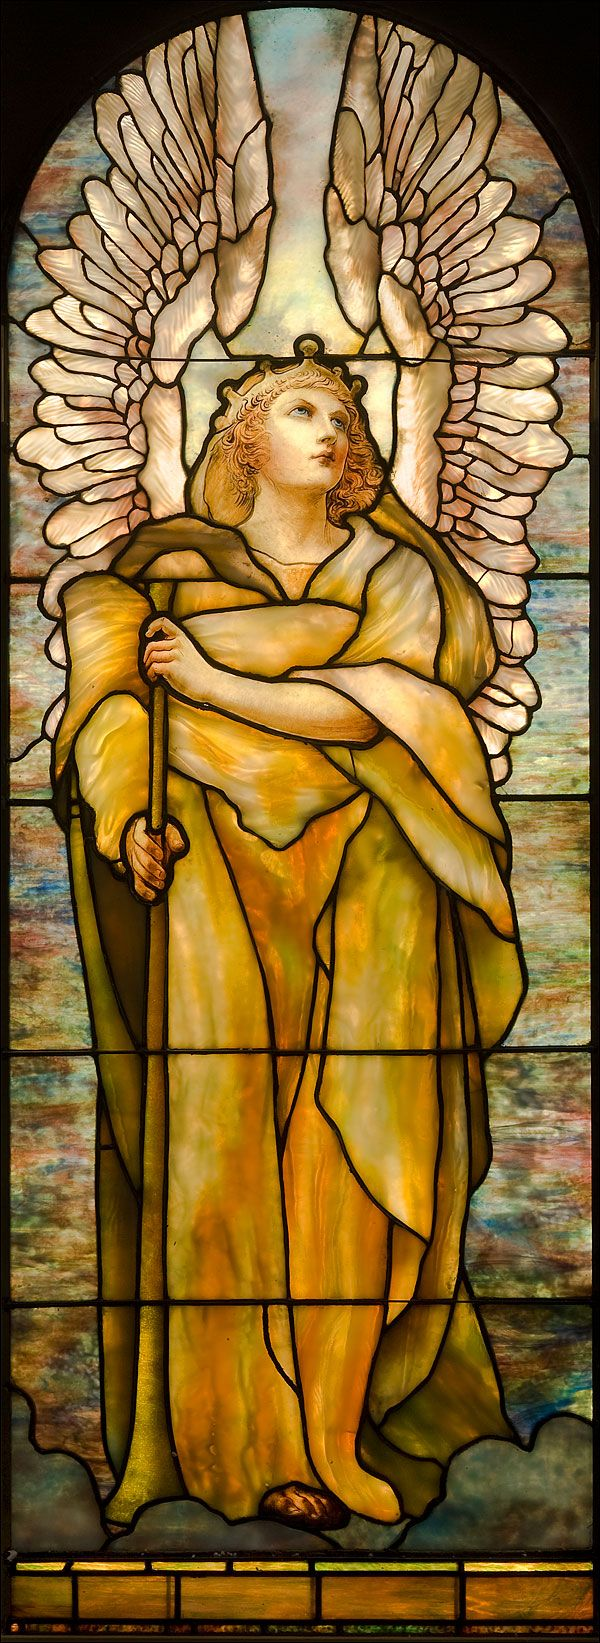 'Angel of the Resurrection' by Louis C. Tiffany (1848-1933) - Collection of the Montreal Museum of Fine Arts.